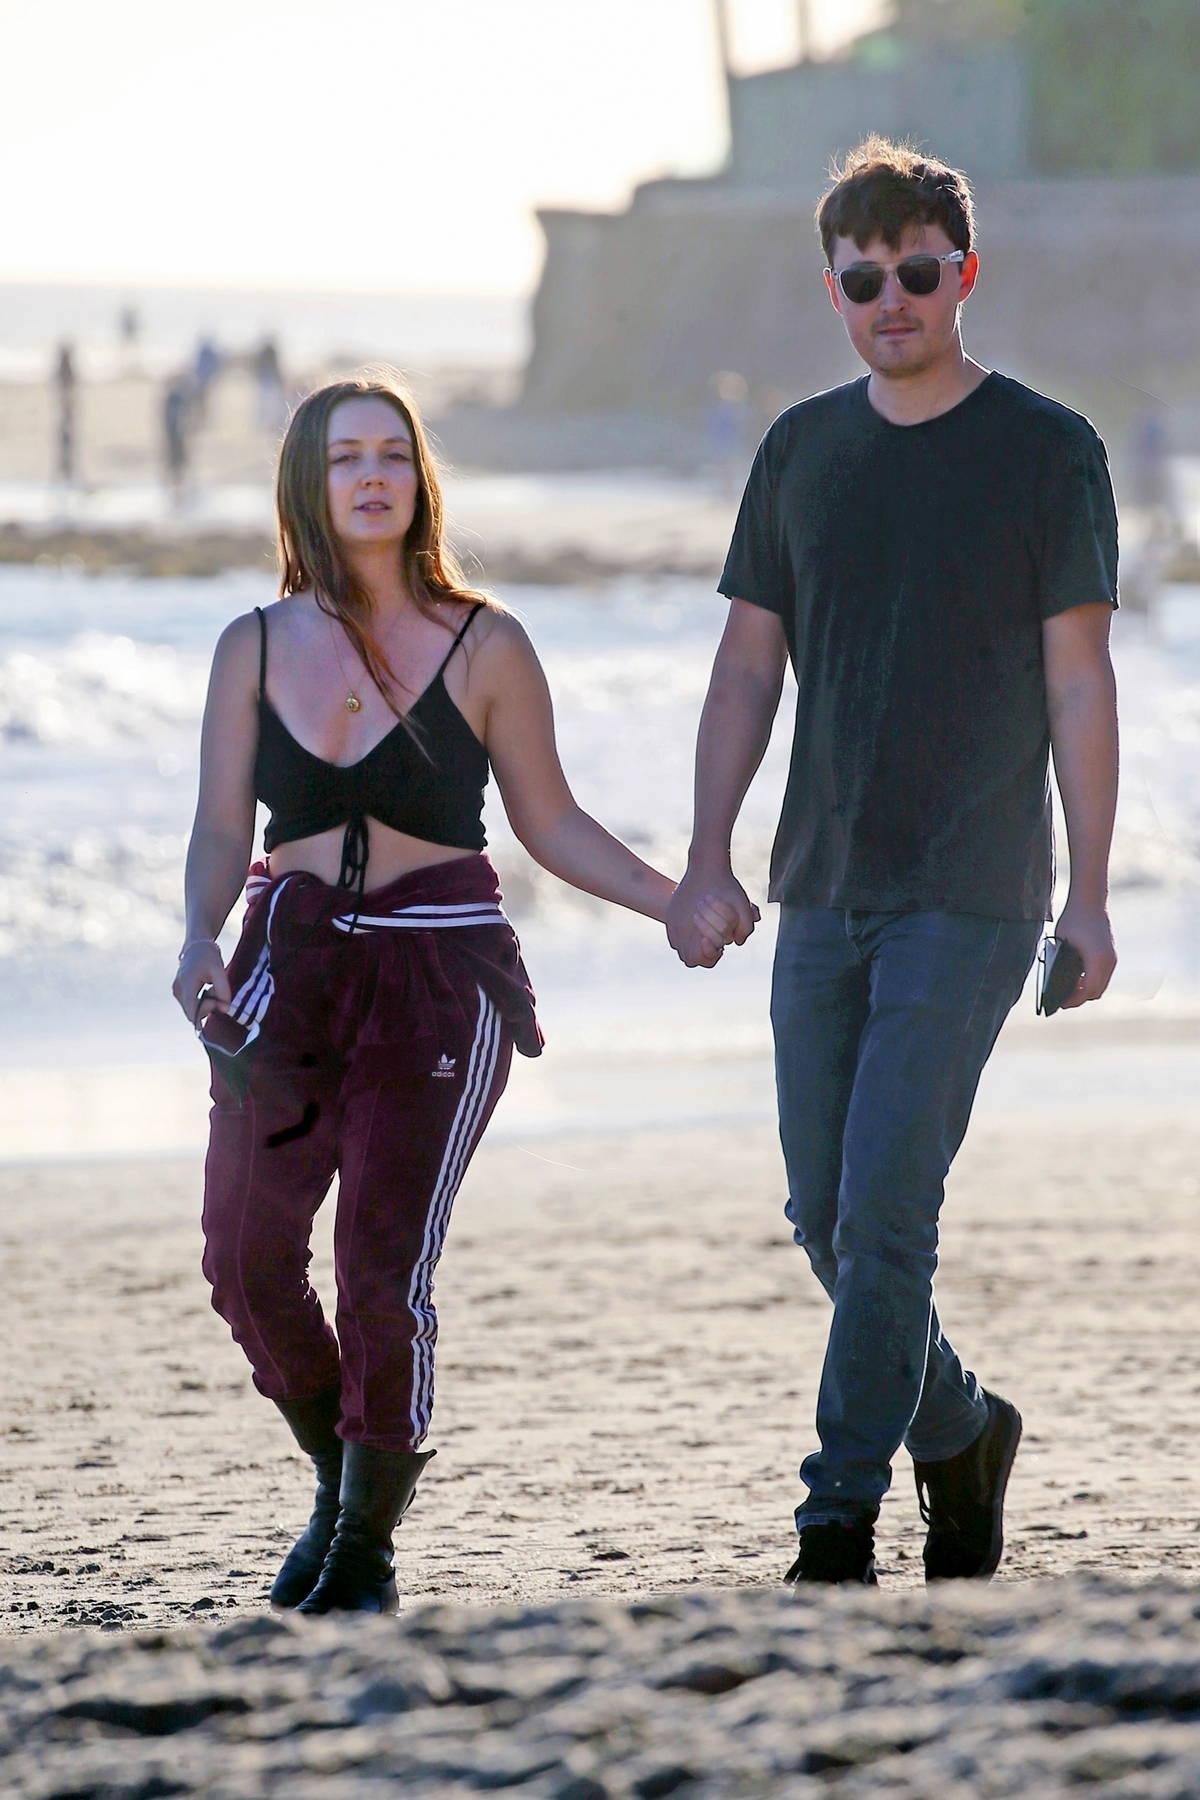 Billie Lourd flashes her diamond engagement ring on the beach with her fiancé Austen Rydell in Santa Barbara, California